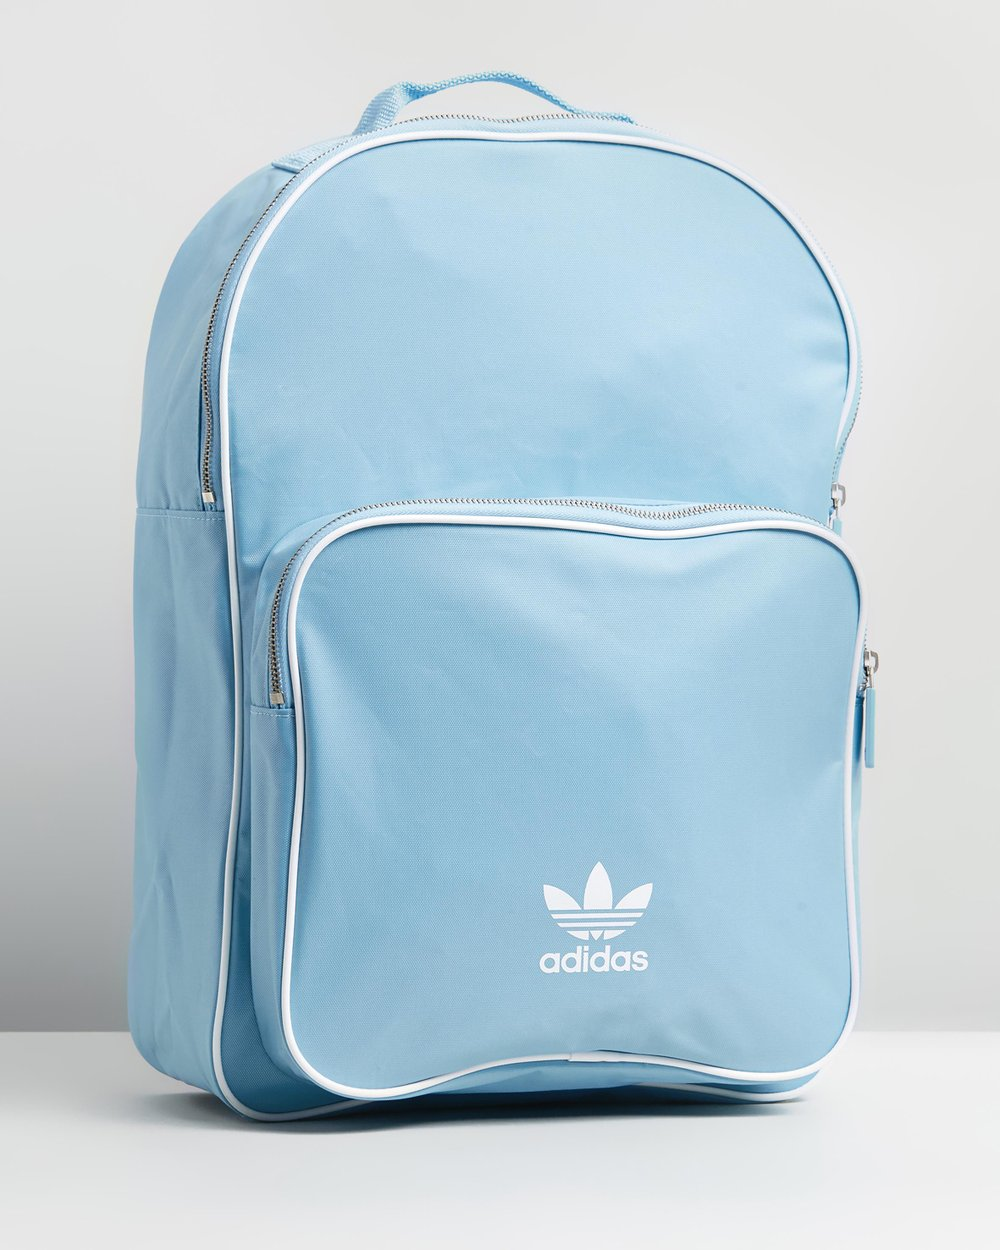 f08fcf2dc5 adicolor Classic Backpack by adidas Originals Online